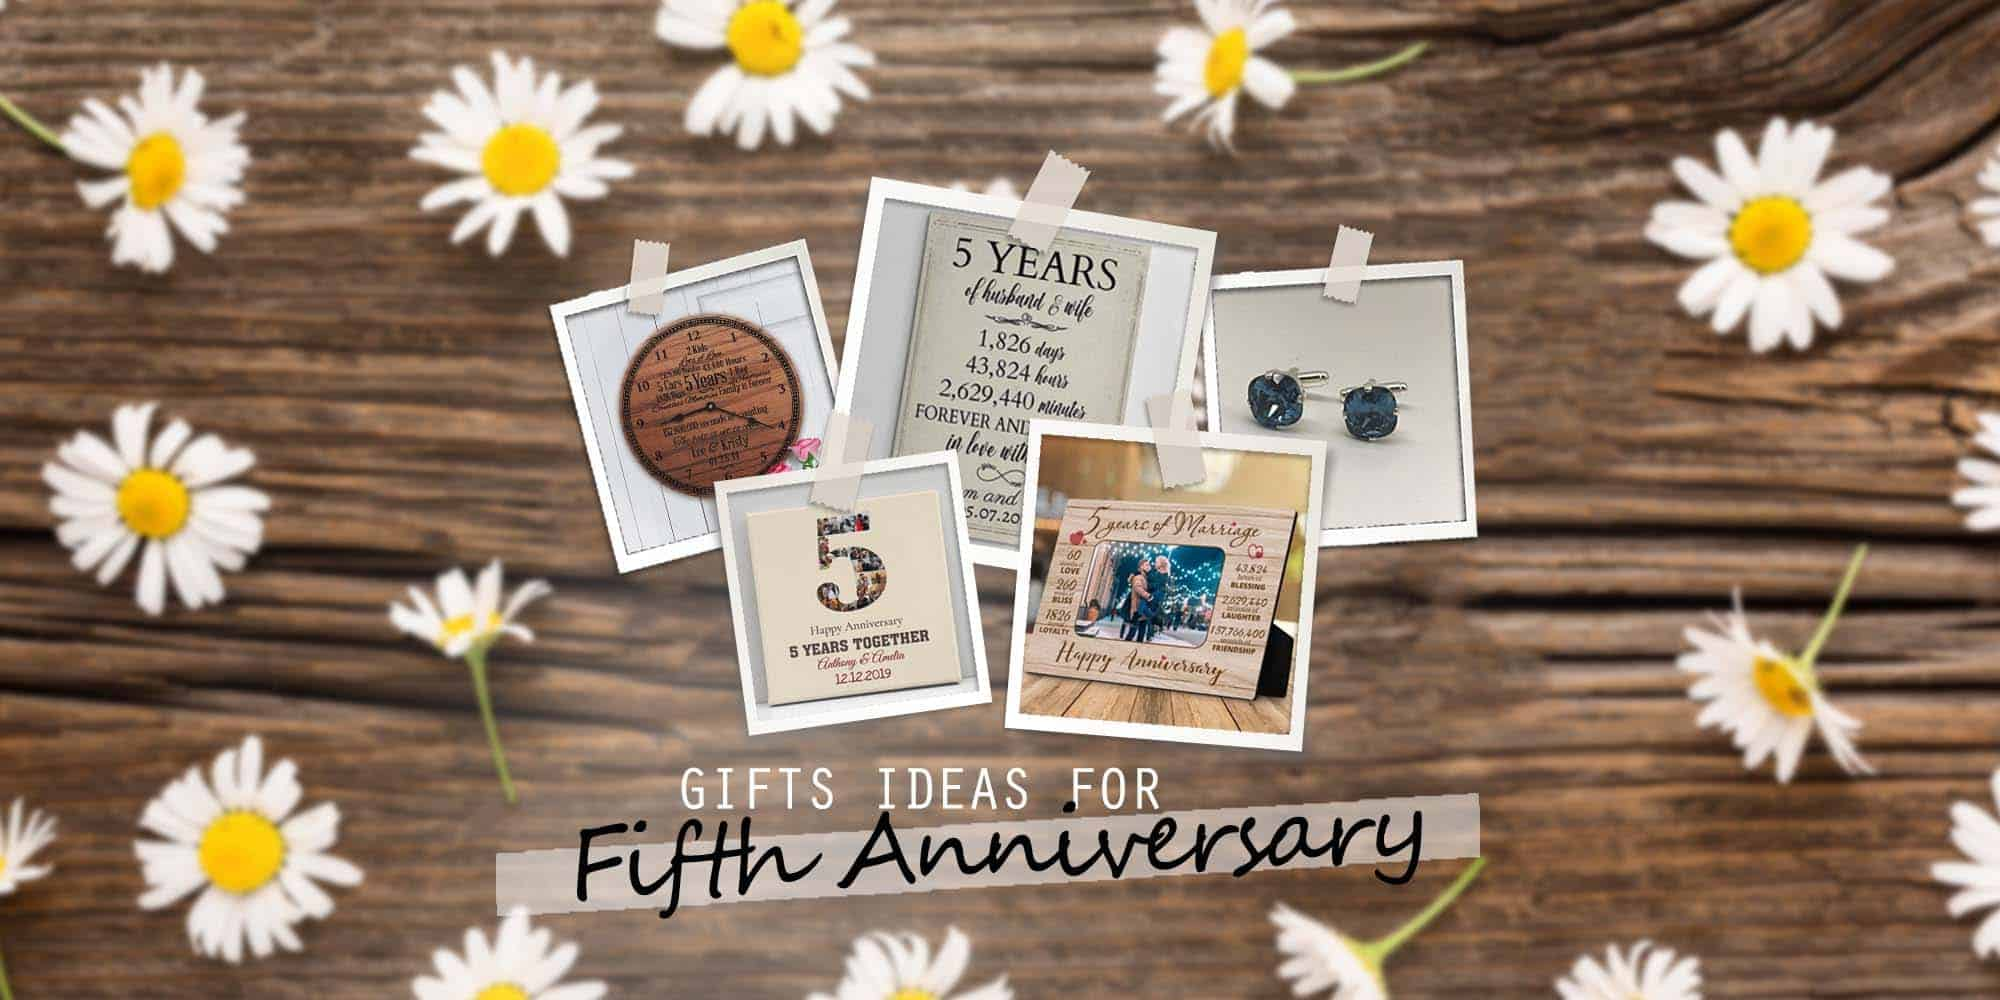 38 Best 5 Year Anniversary Gifts for Him, Her & Couple (2021)